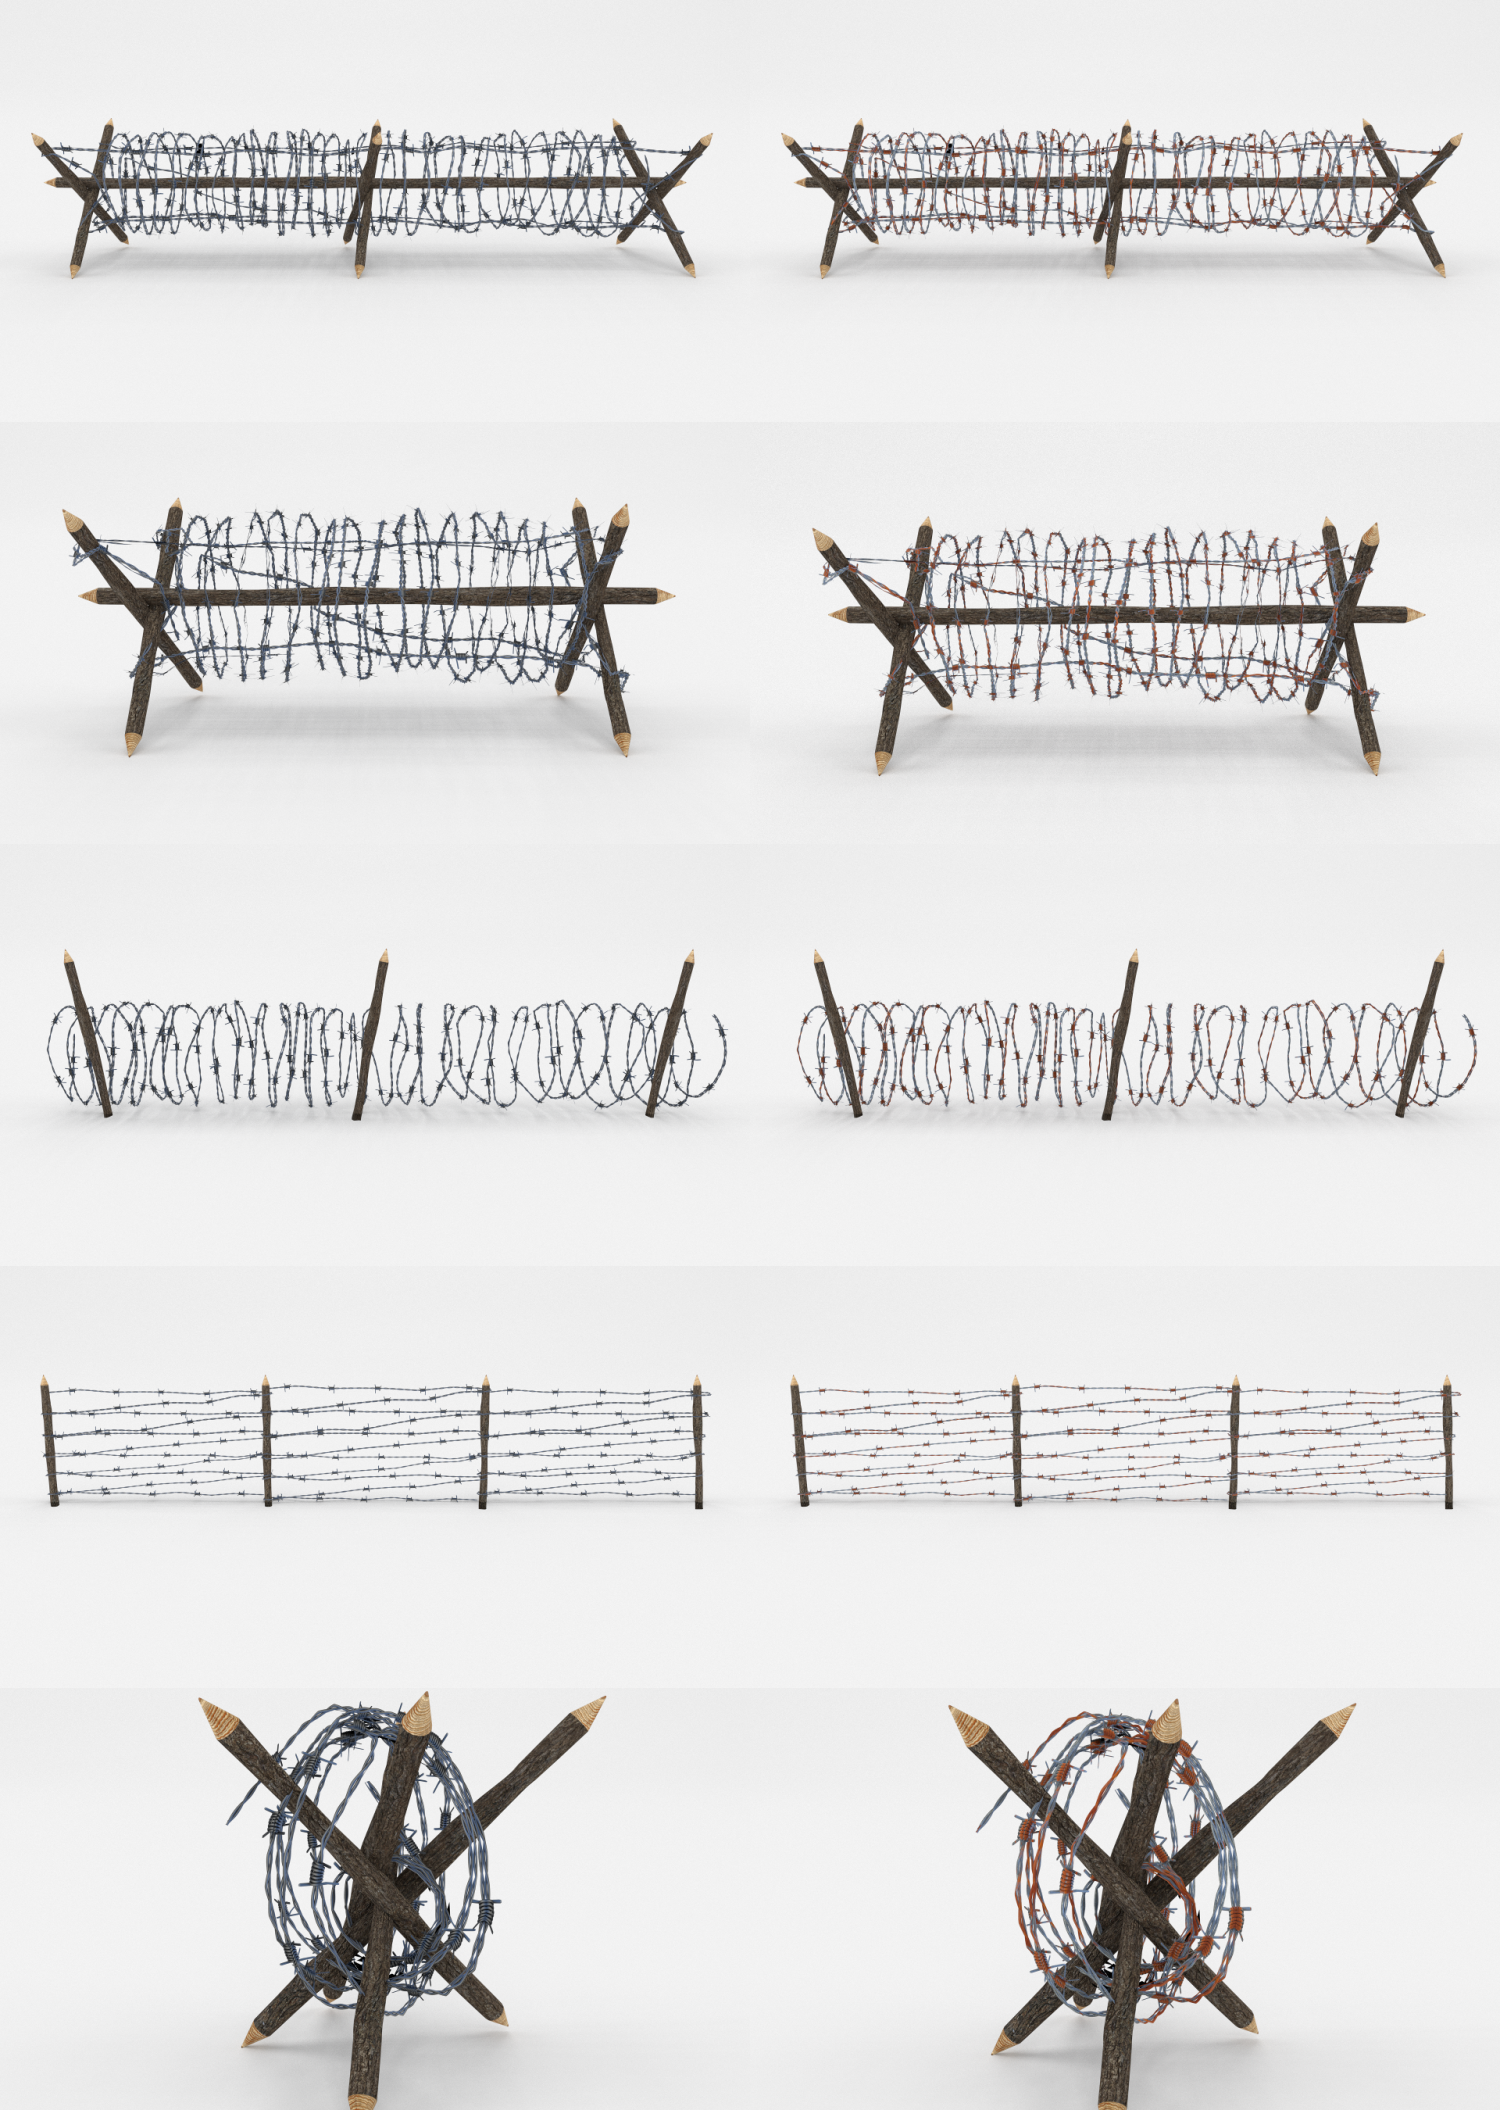 Lowpoly Barb Wire Obstacle Collection 3D Model in Miscellaneous 3DExport